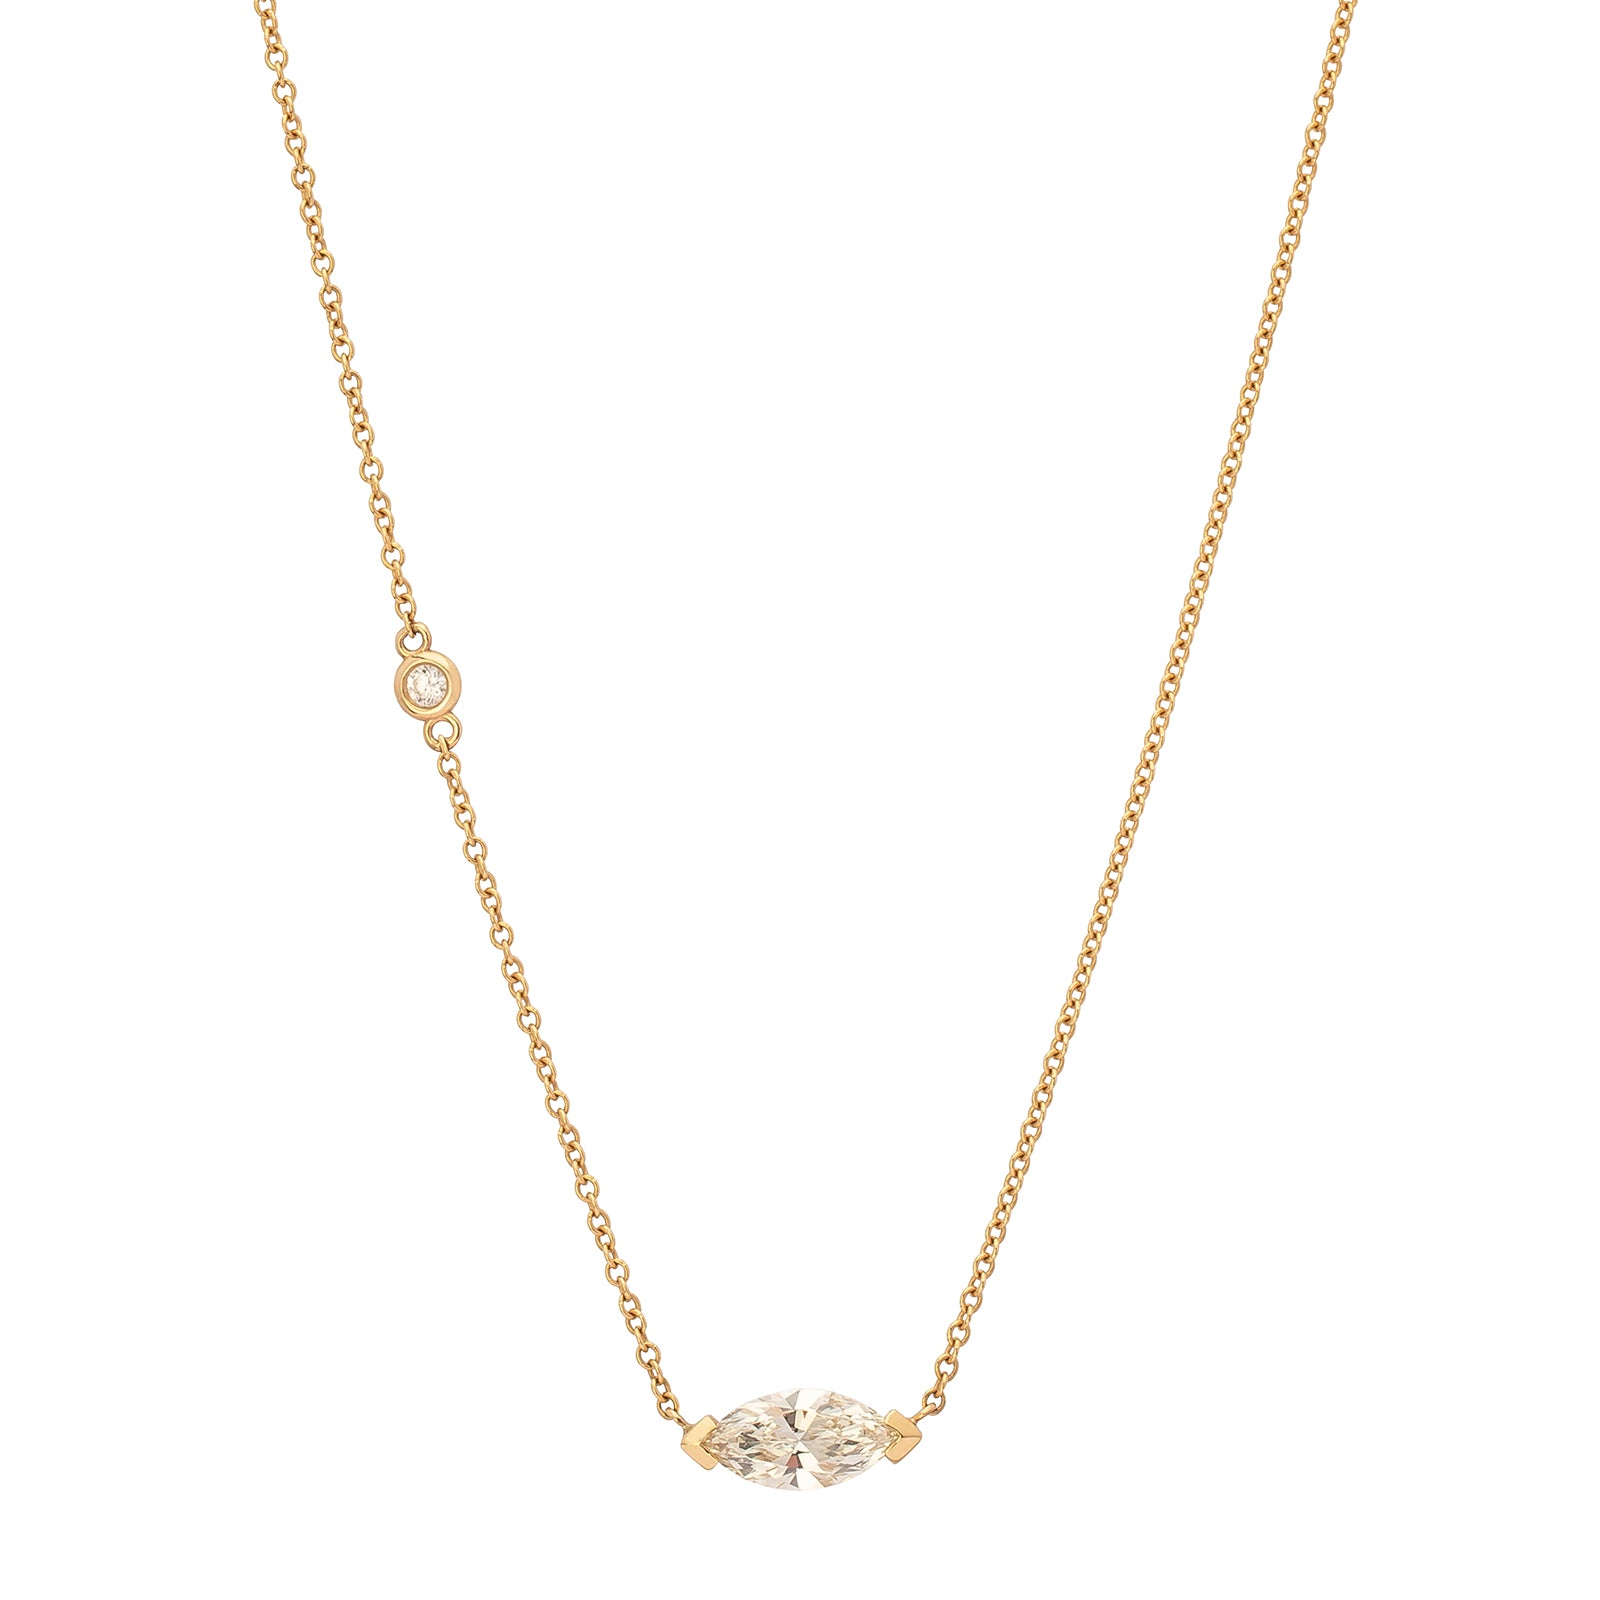 Shay Solitaire Marquise Pendant Necklace - Necklaces - Broken English Jewelry